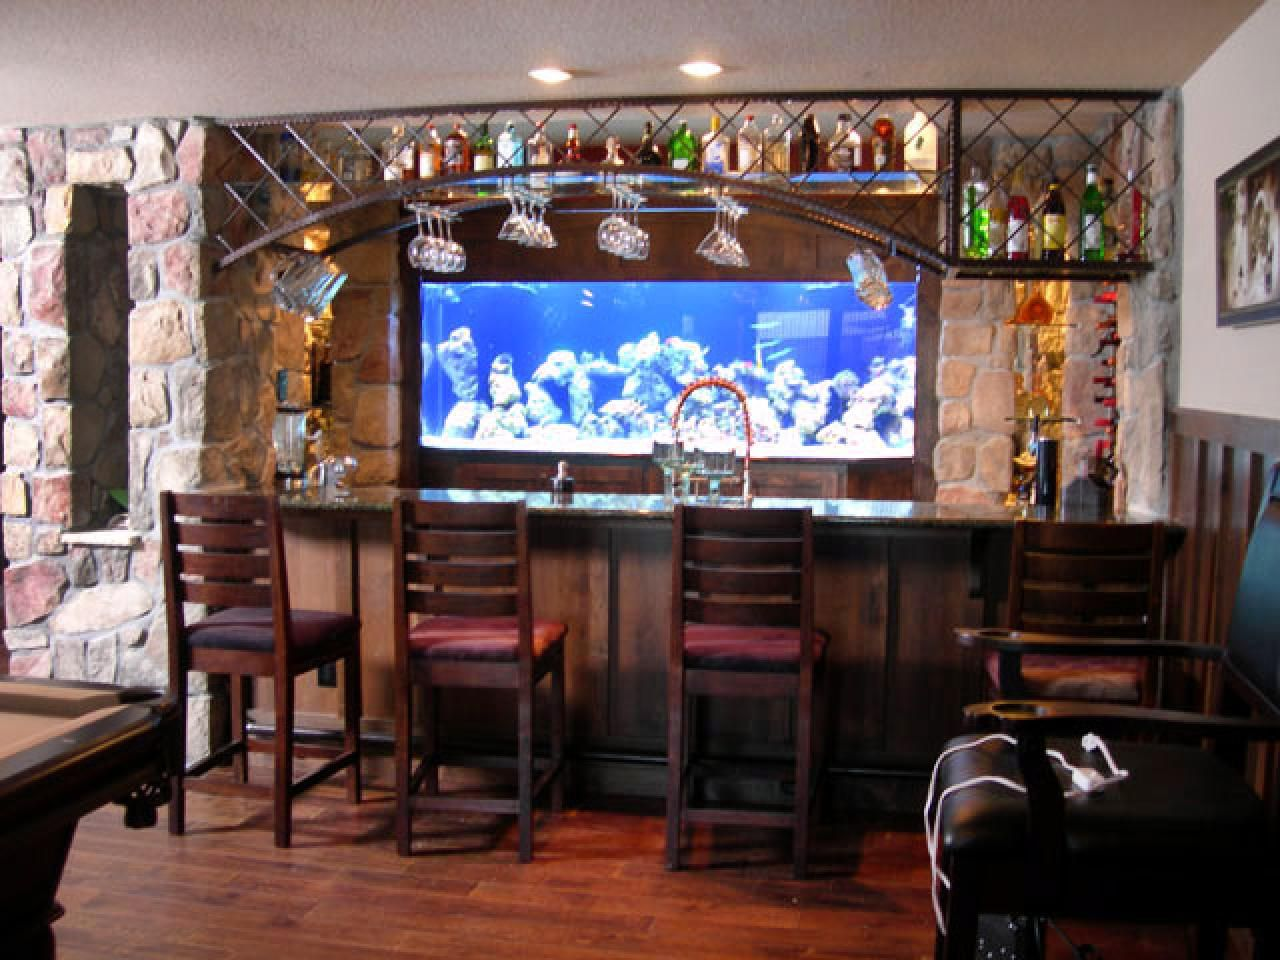 Home bar ideas 89 design options hgtv kitchen design for Home bar design ideas